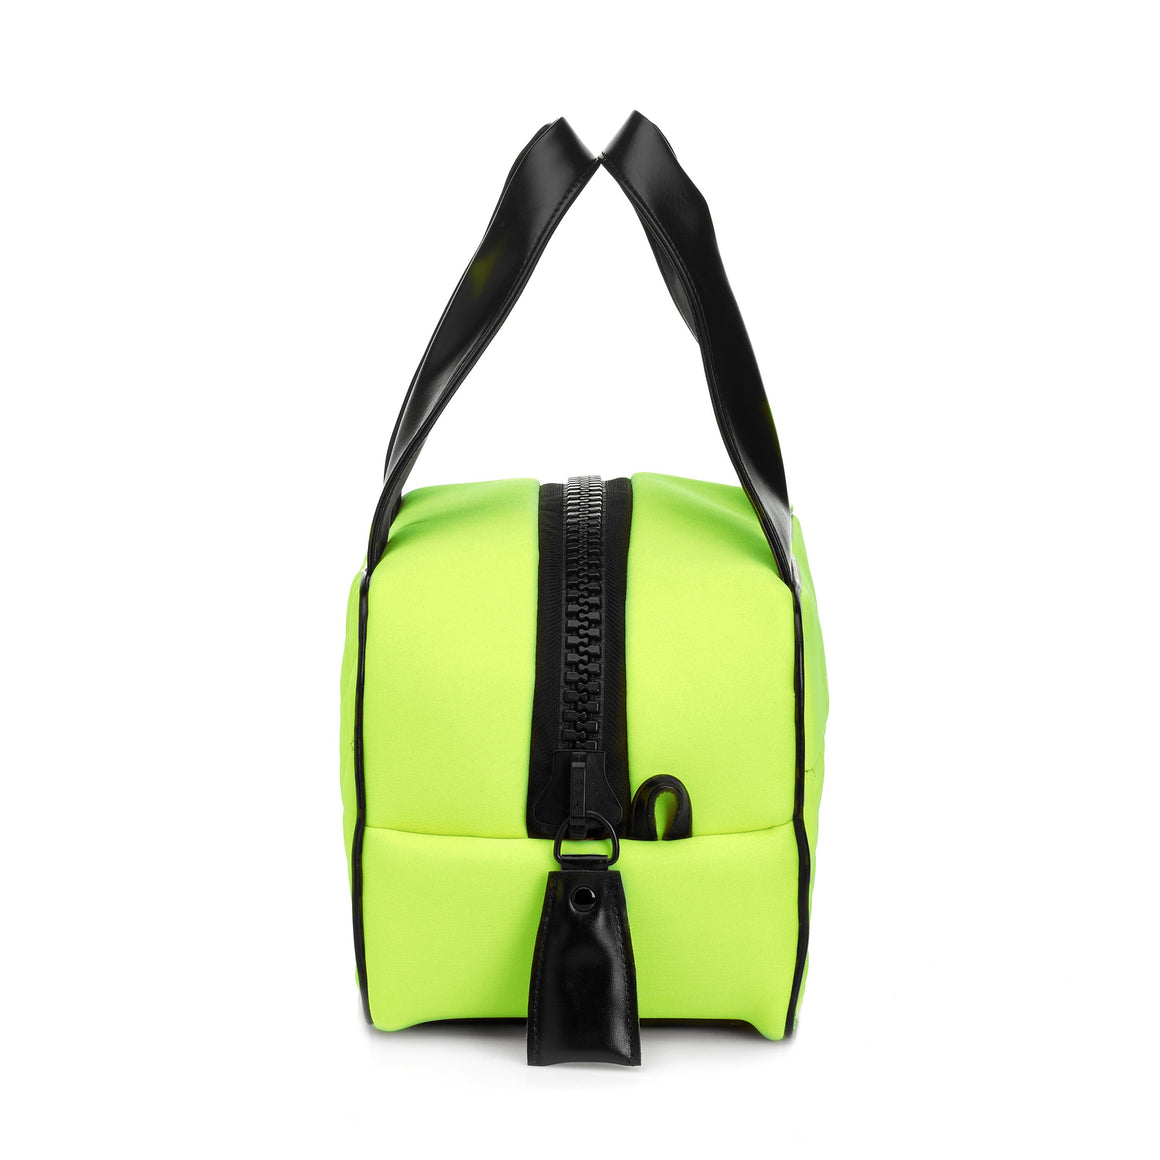 NEOPRENE BAG 26 - LIME GREEN